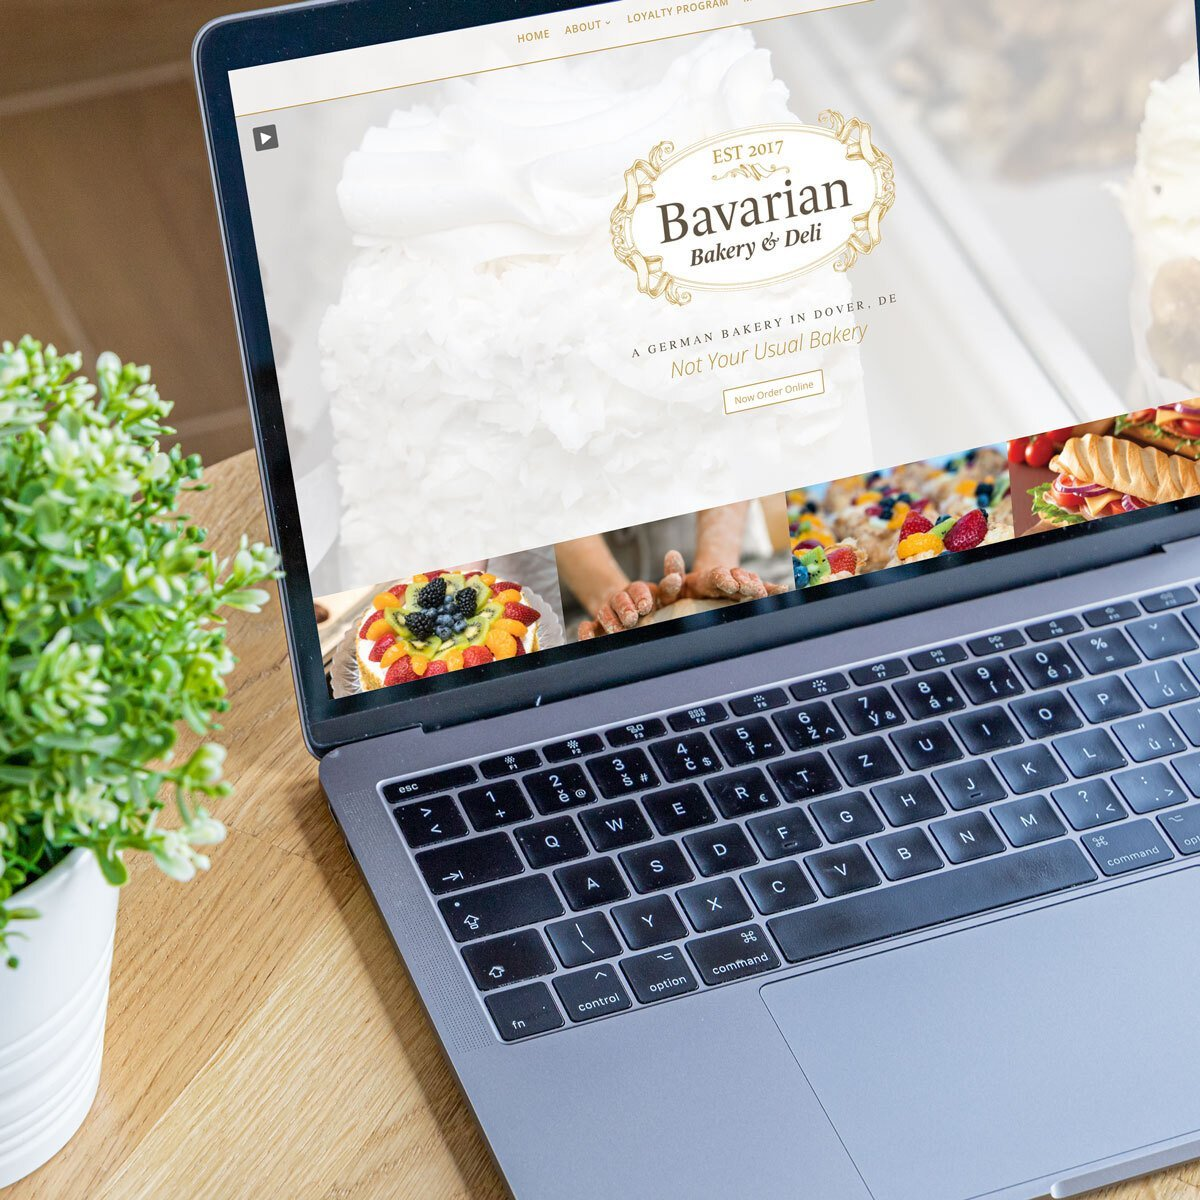 Bavarian Bakery Web Design by BrandSwan, a web design company